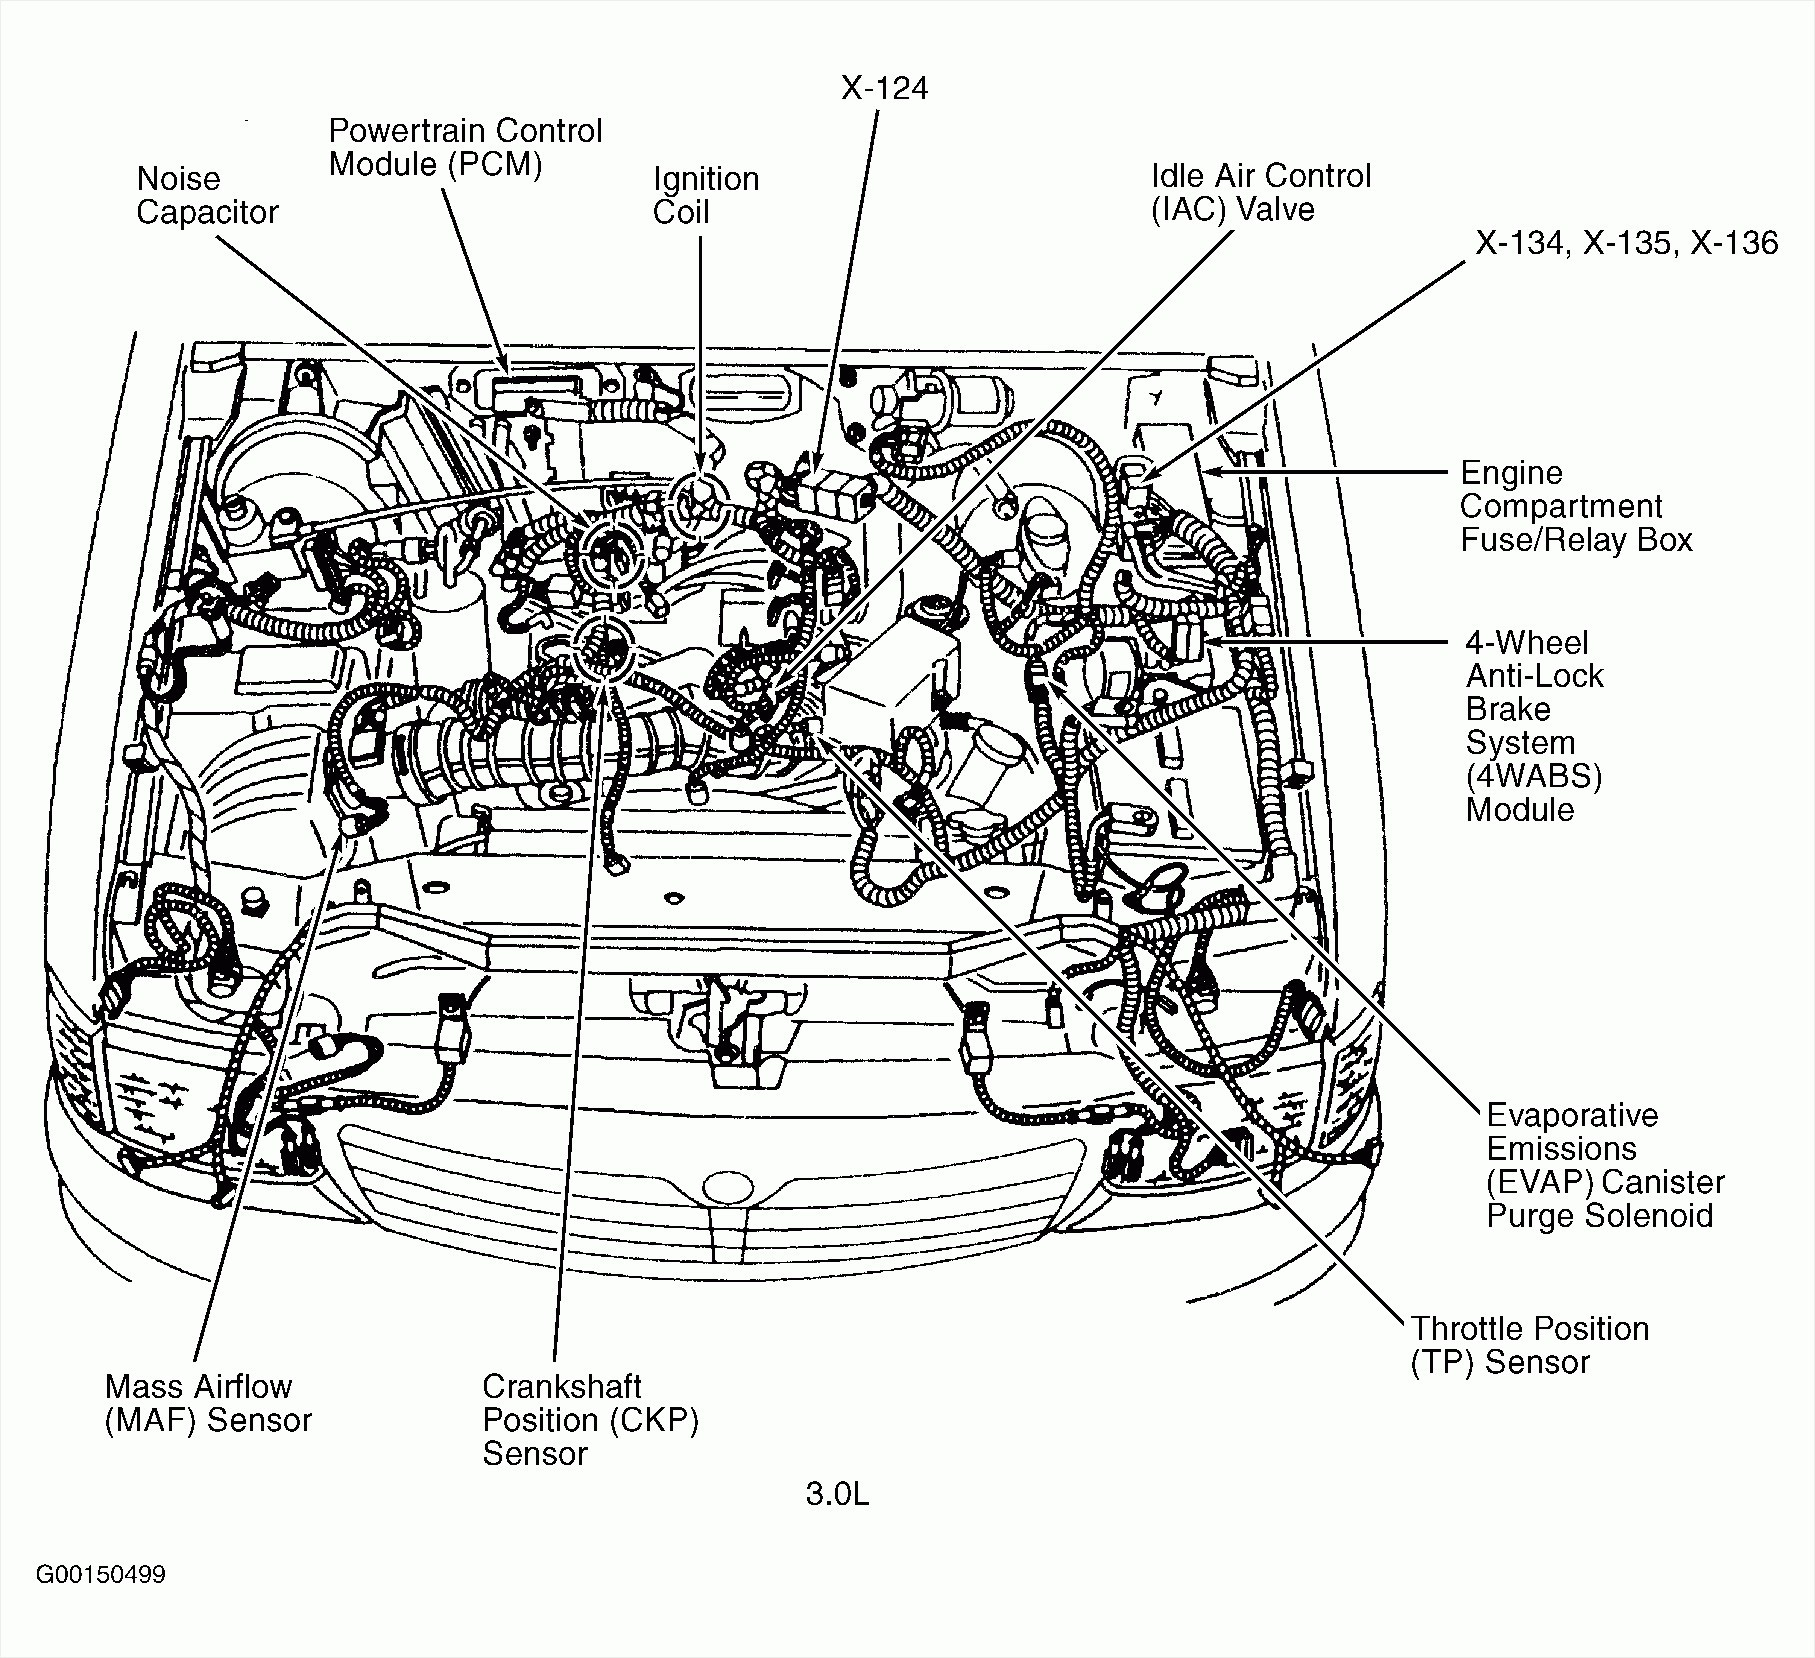 hight resolution of 2004 ford taurus engine diagram wiring diagram view2004 taurus cooling system diagram wiring diagram view 2004